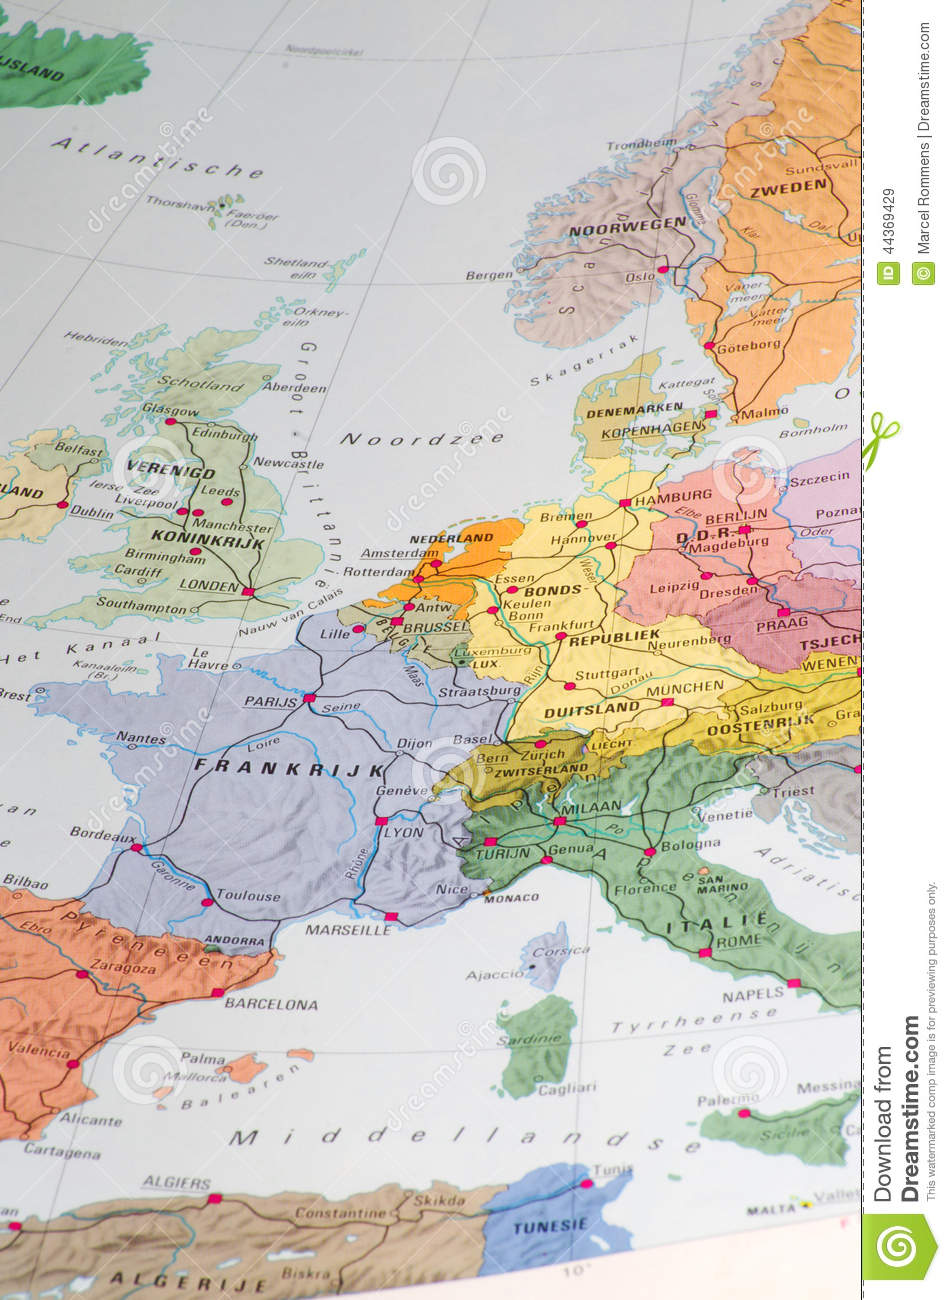 Old map of western europe stock image. Image of britain - 44369429